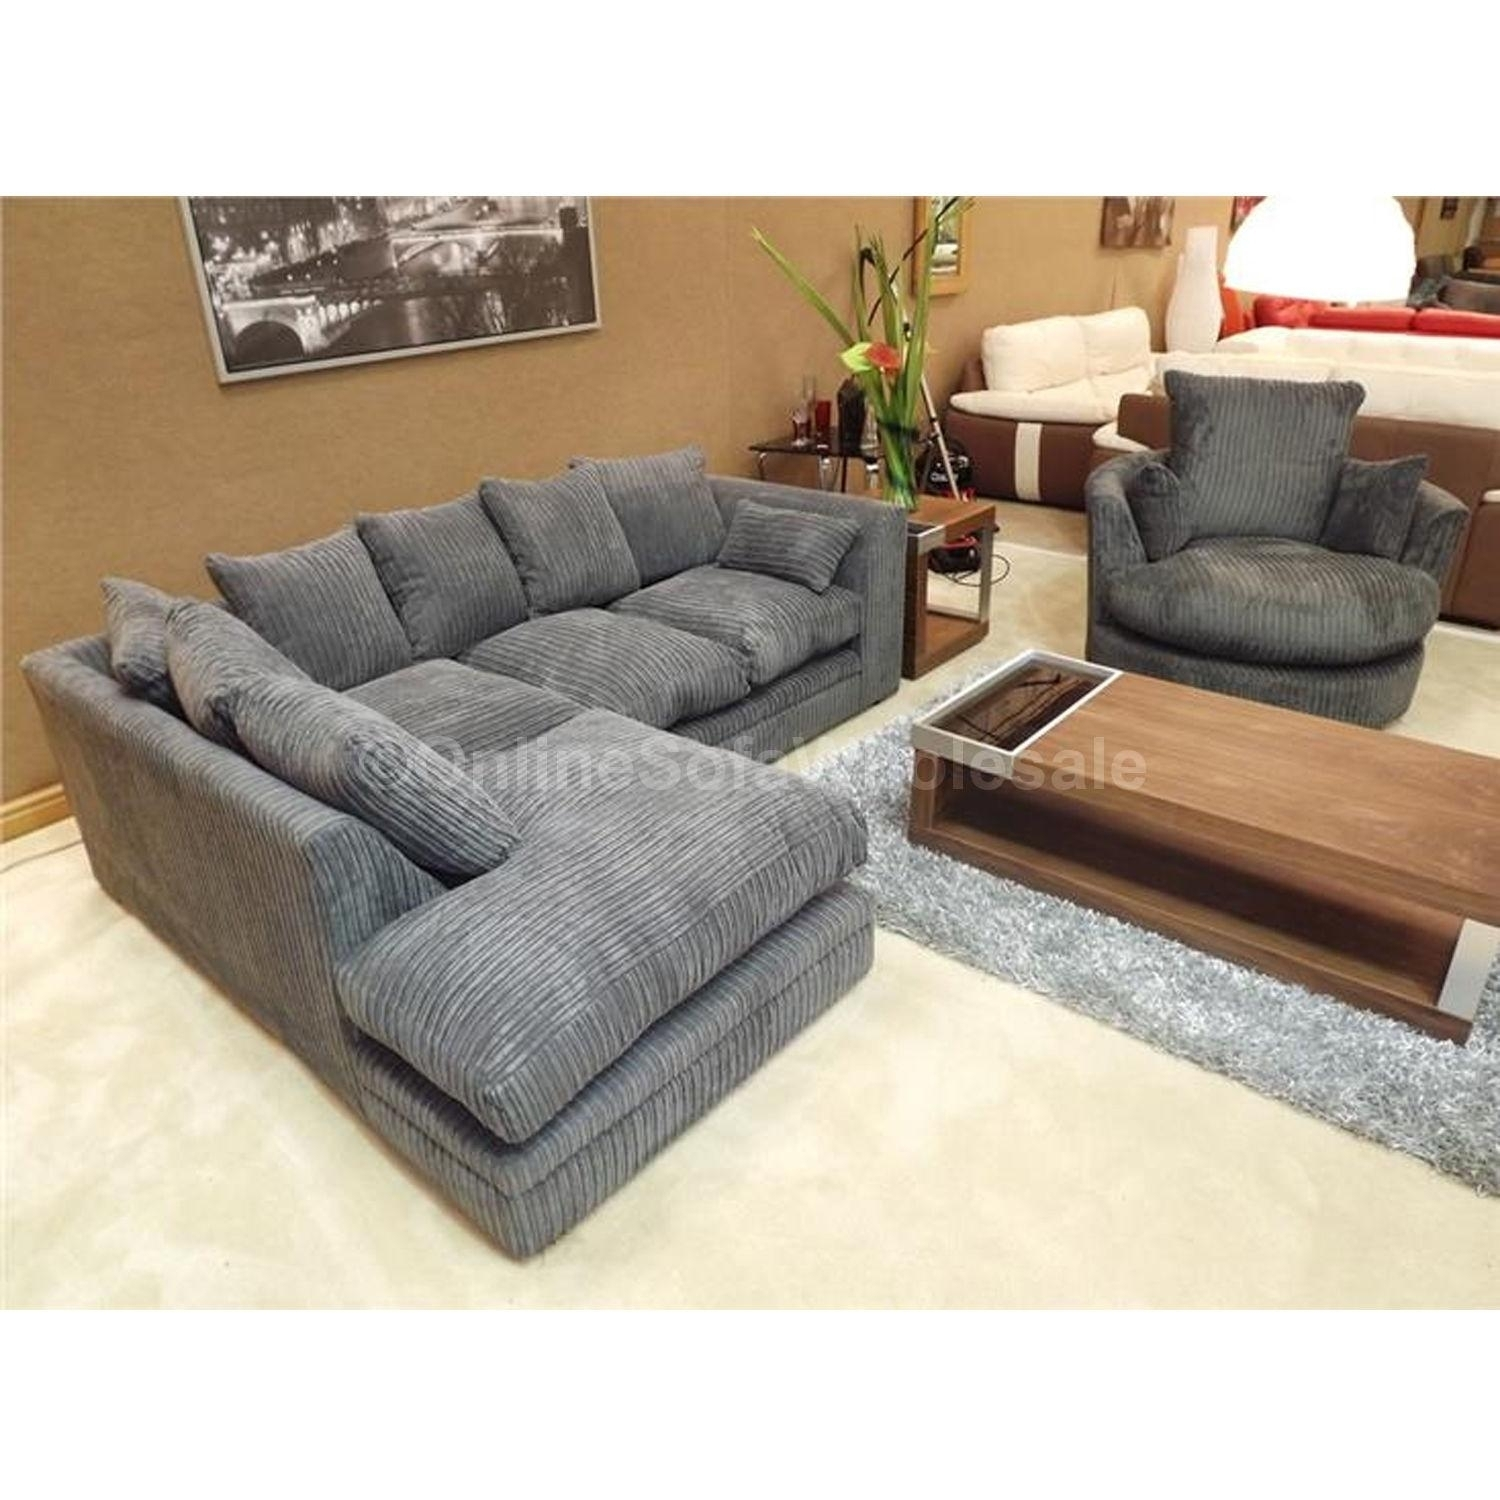 10 Photos Sofas With Swivel Chair